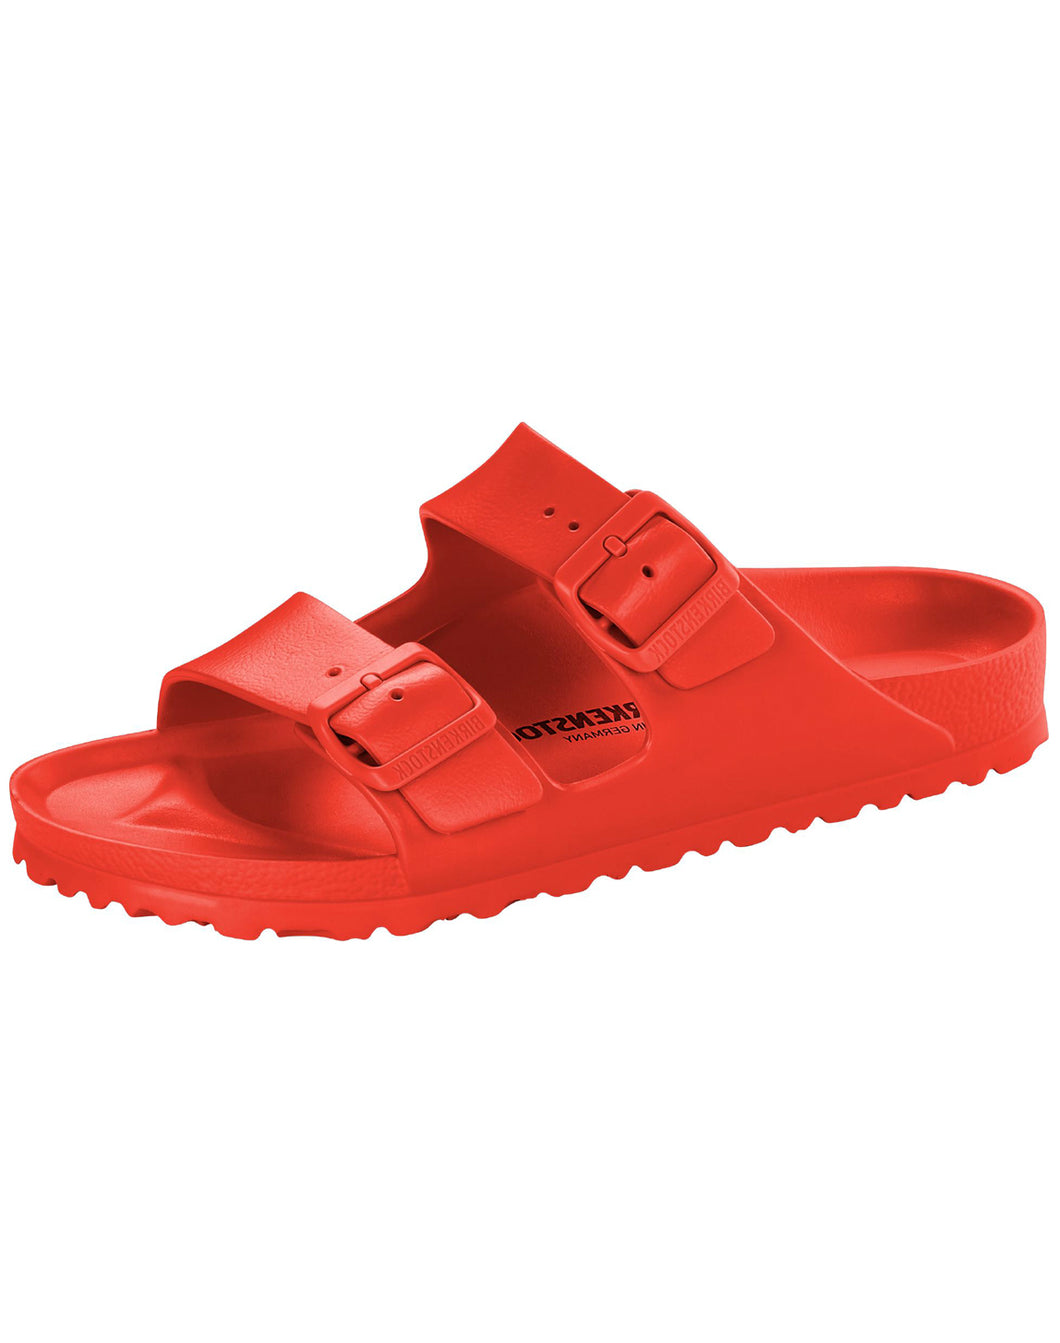 BIRKENSTOCK ARIZONA ACTIVE RED NARROW